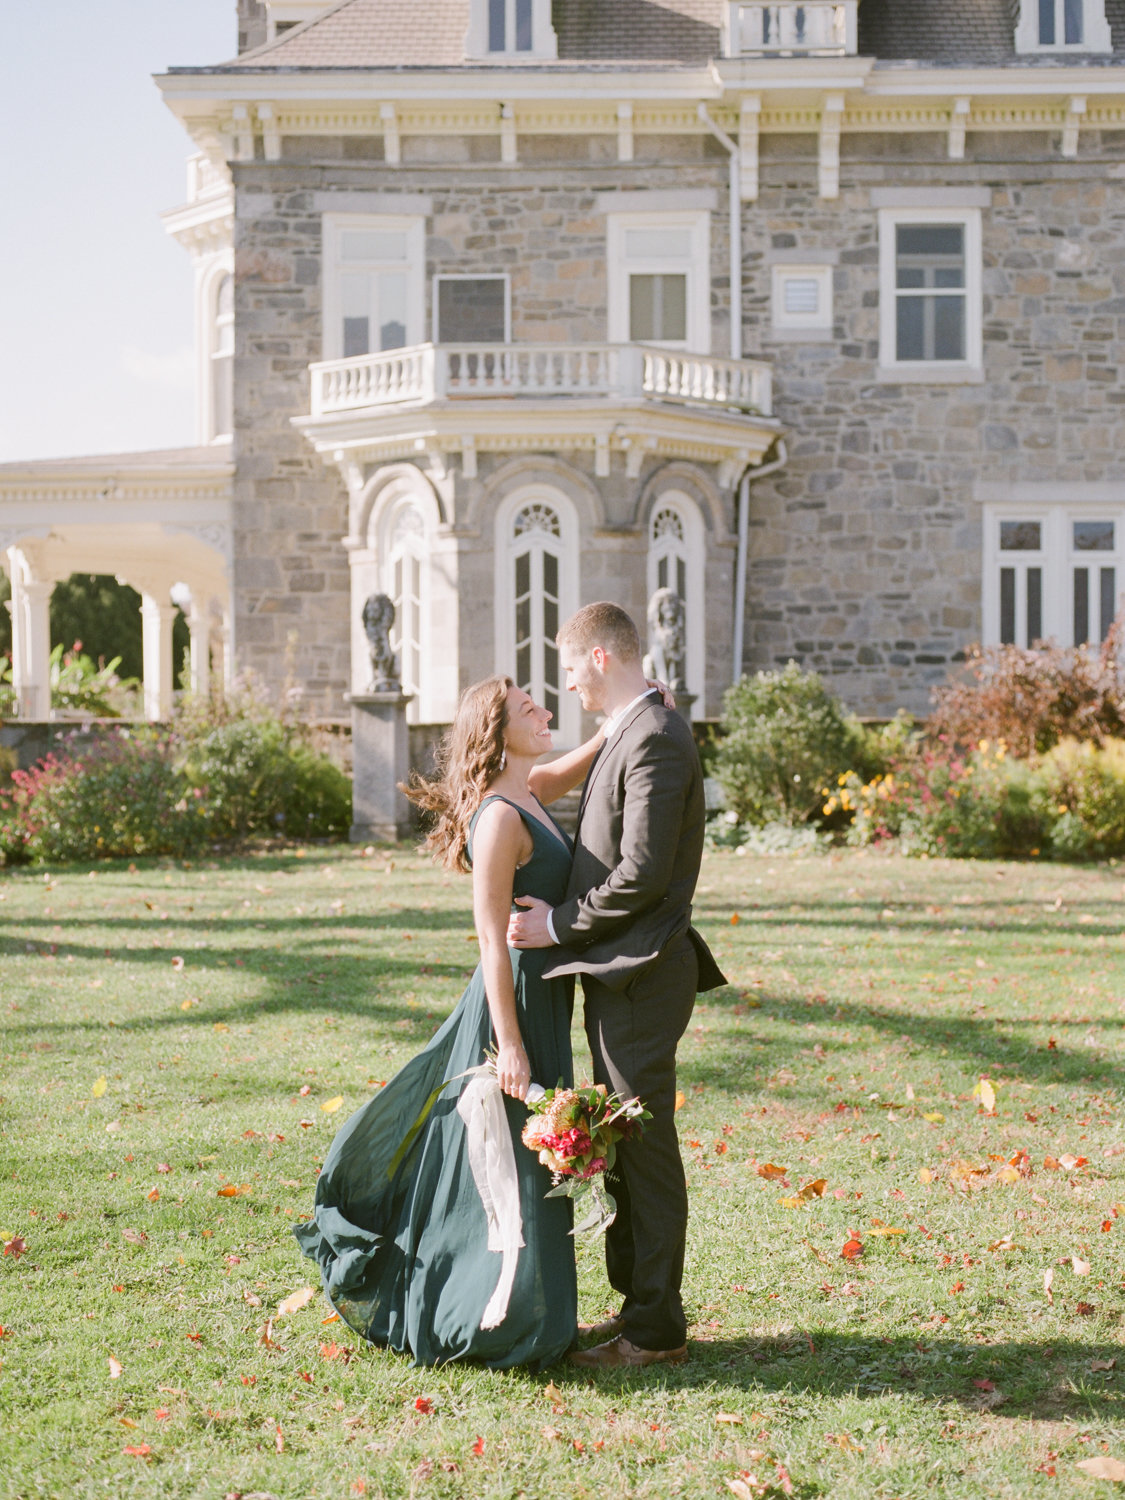 Cylburn-Arboretum-Baltimore-Maryland-Fall-Wedding-Photographer-Katie-Howell-Photography-120615010011